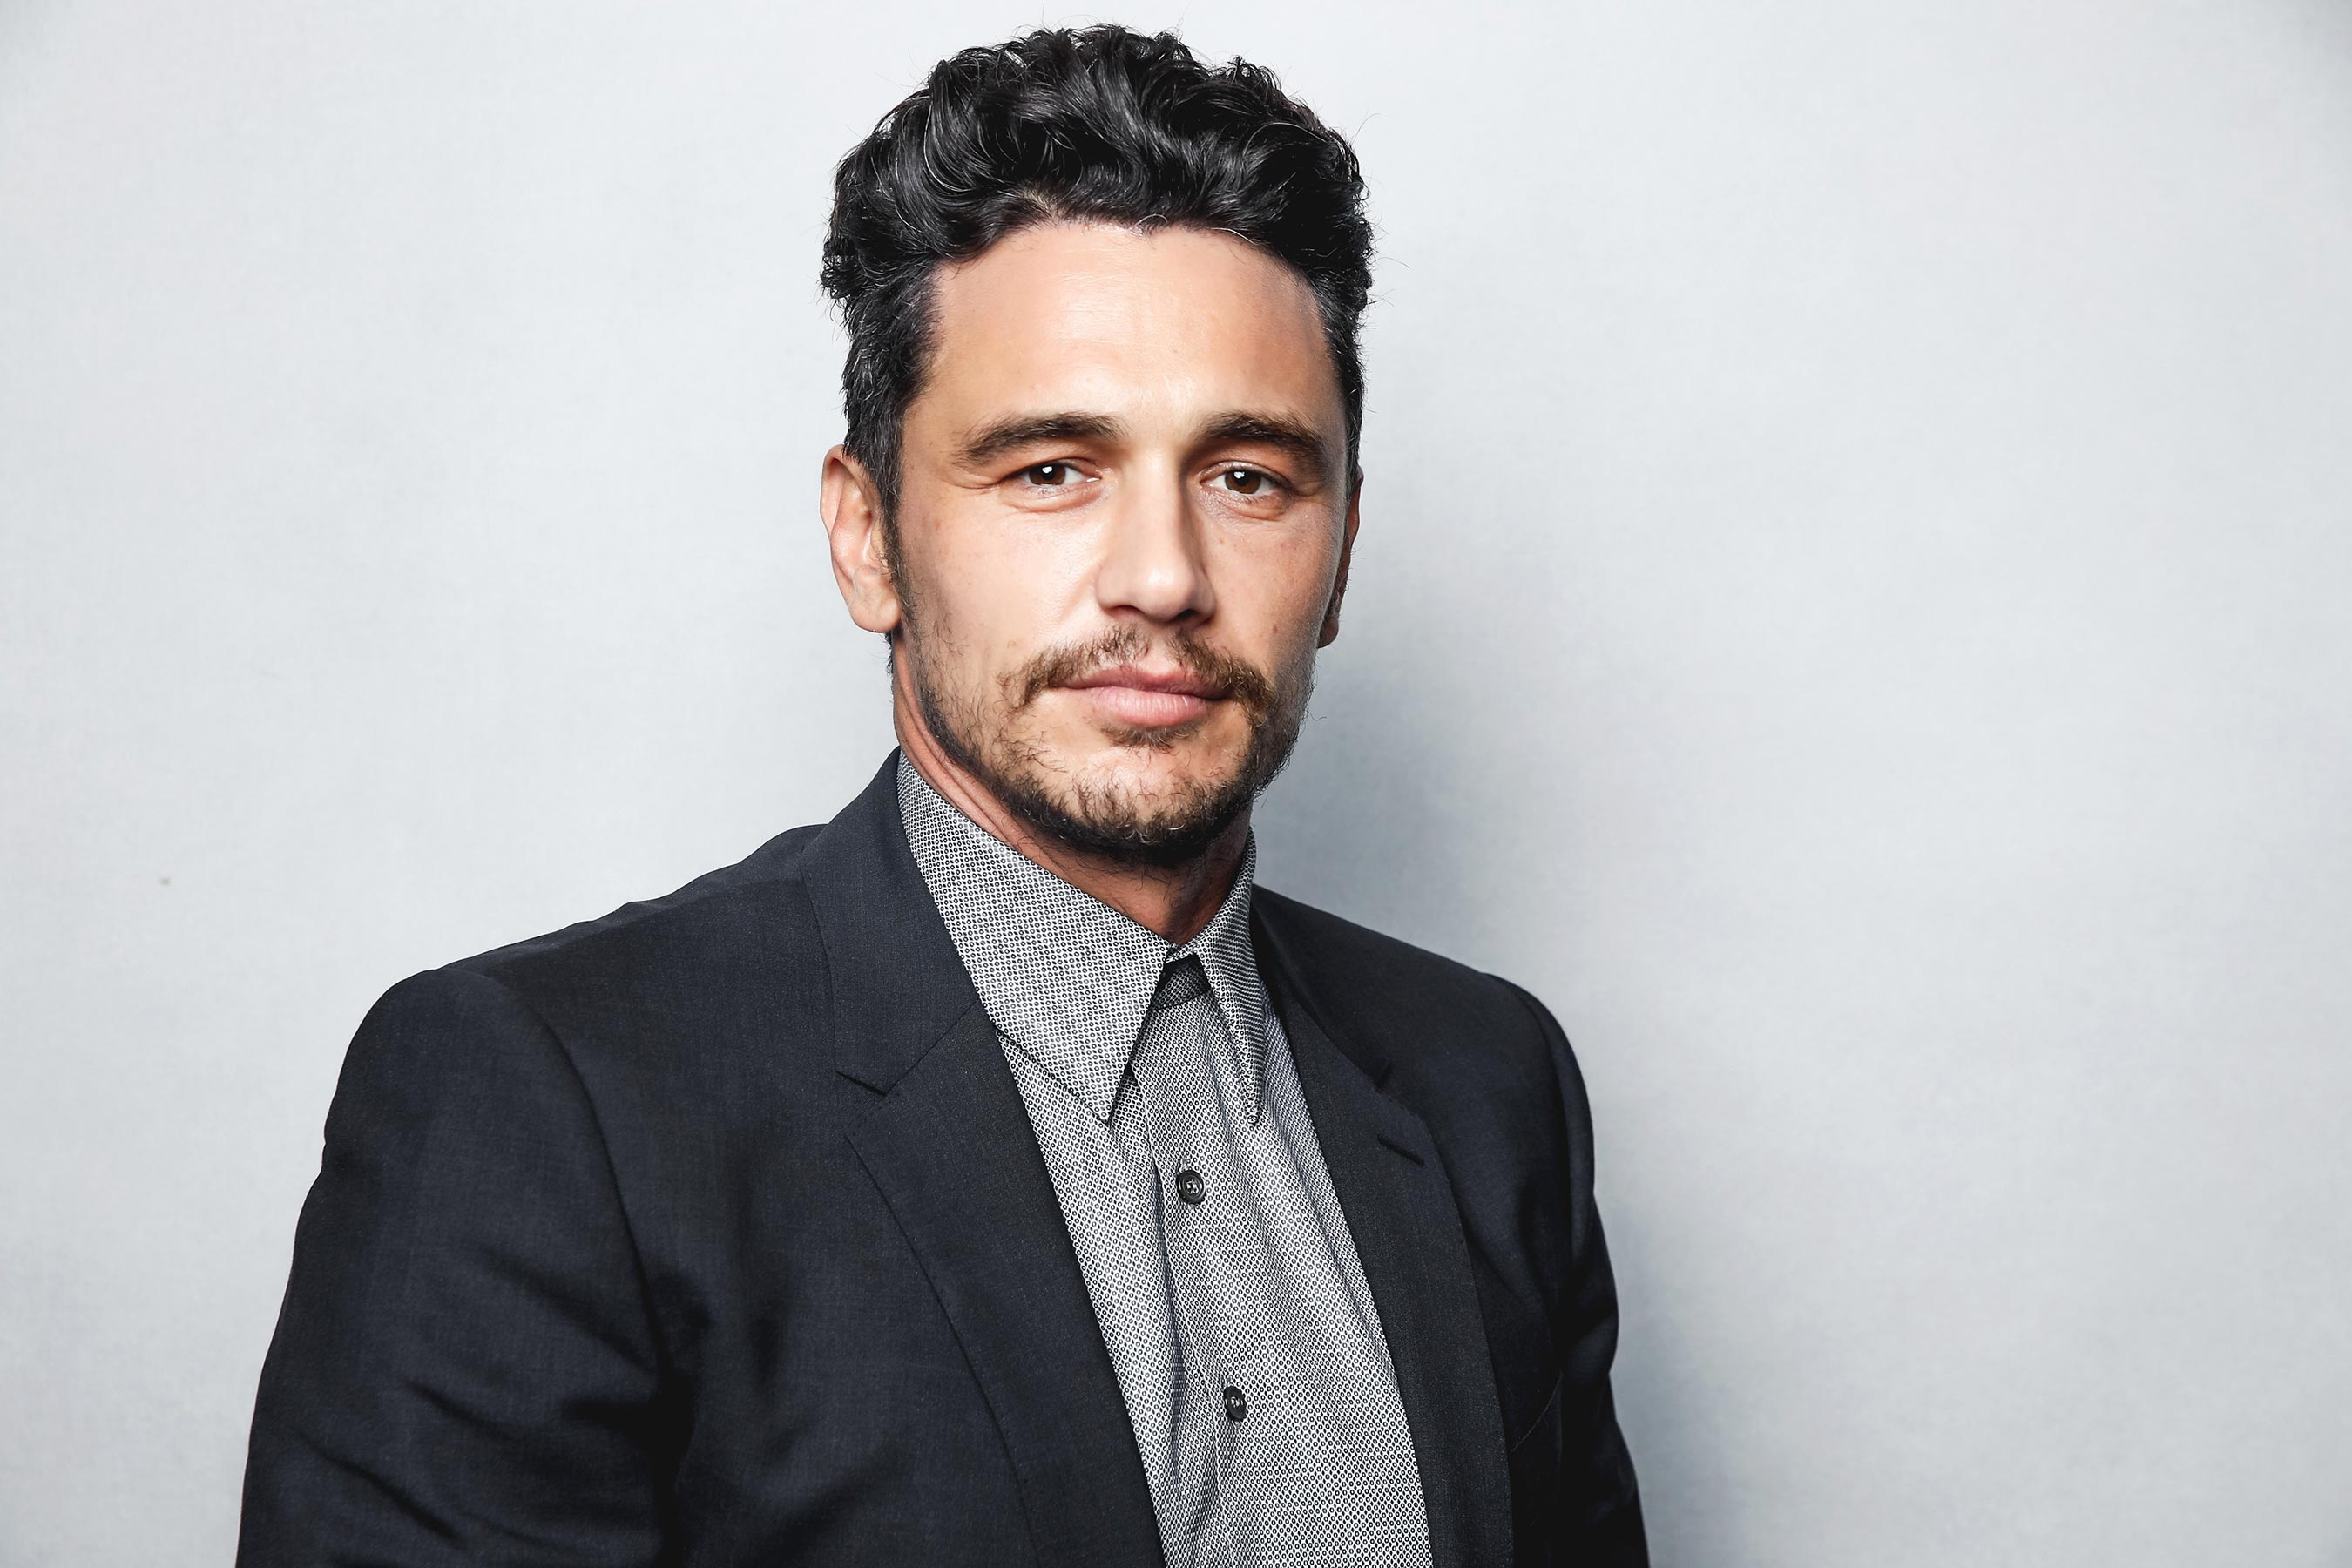 James Franco's mural removed from Palo Alto High School